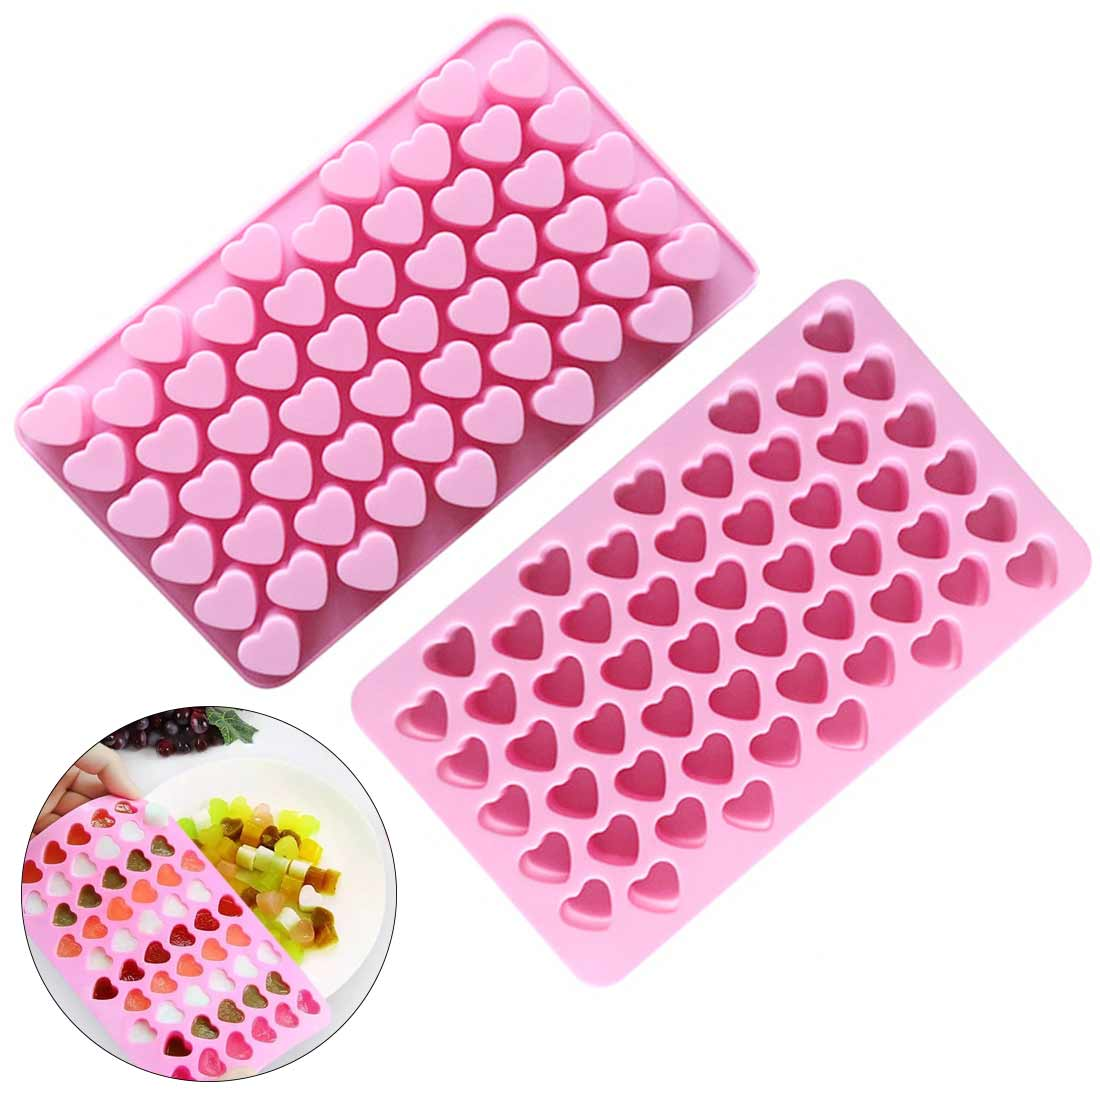 Silicone Chocolate Molds 3D Heart Shape Bakeware Candy Gummy Tray Cake Moulds Easy Demoulding  For Baking Letters Flower